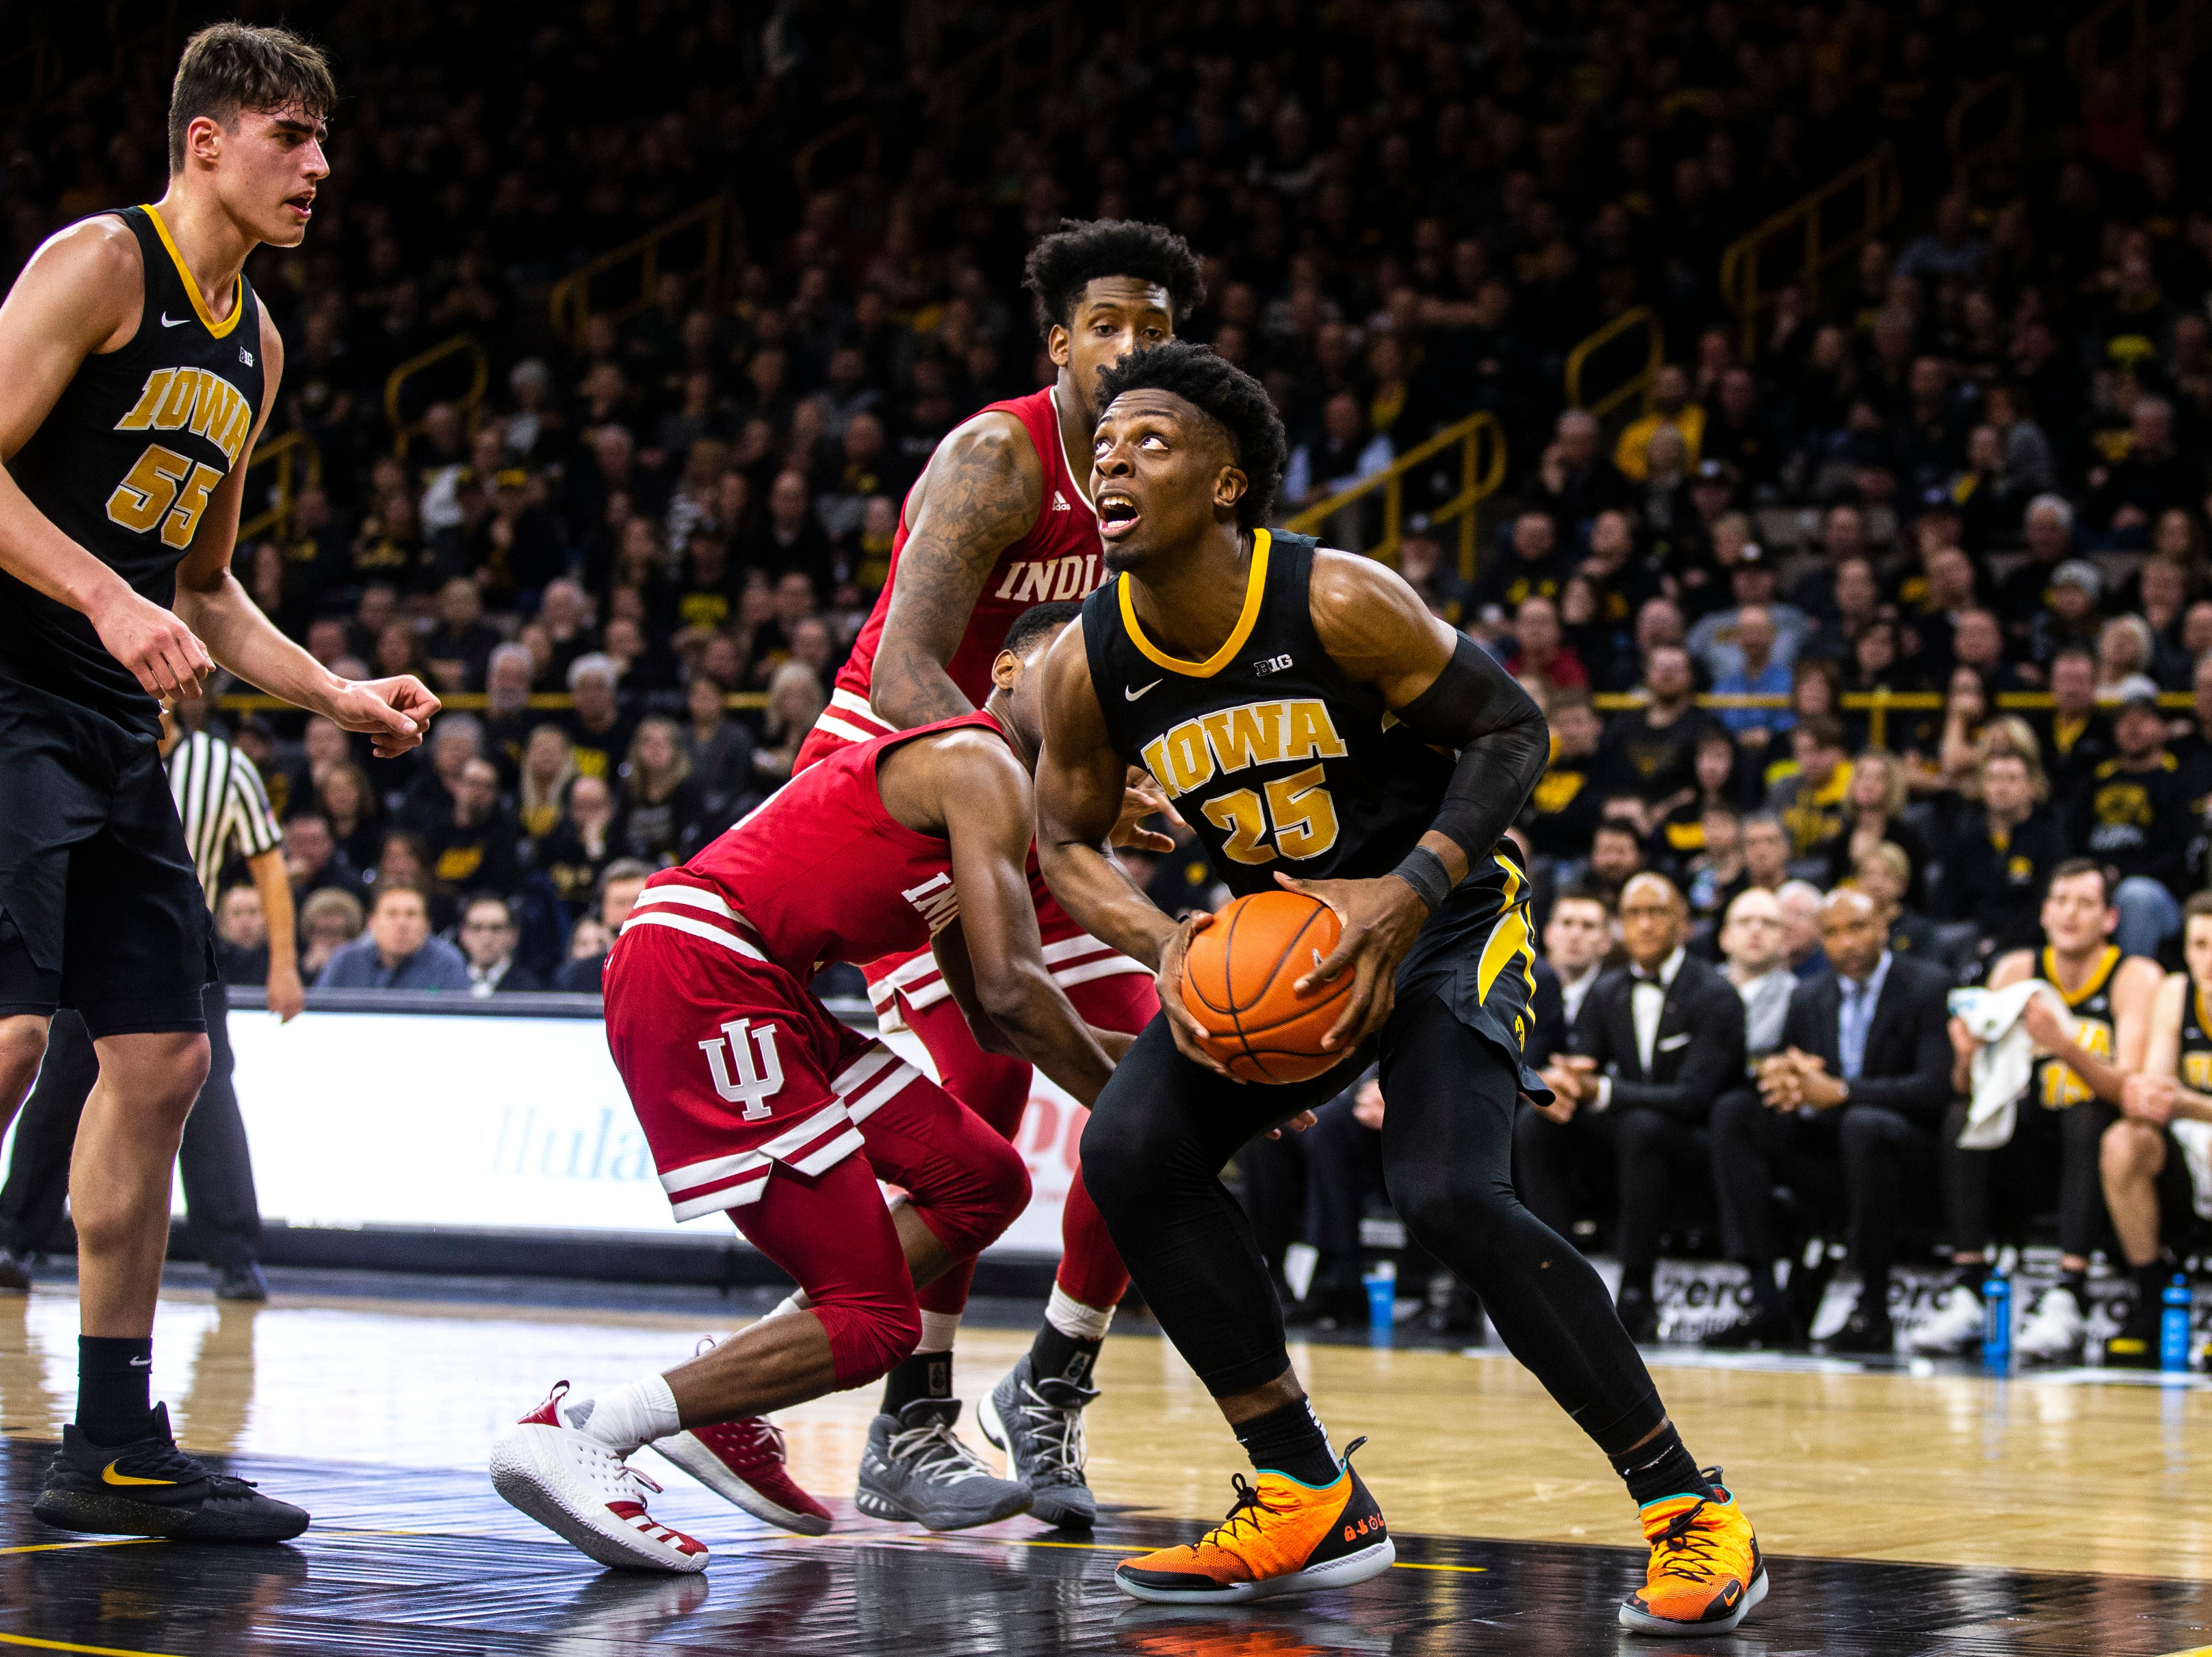 Iowa forward Tyler Cook (25) drives to the basket during a NCAA Big Ten Conference men's basketball game on Friday, Feb. 22, 2019 at Carver-Hawkeye Arena in Iowa City, Iowa.